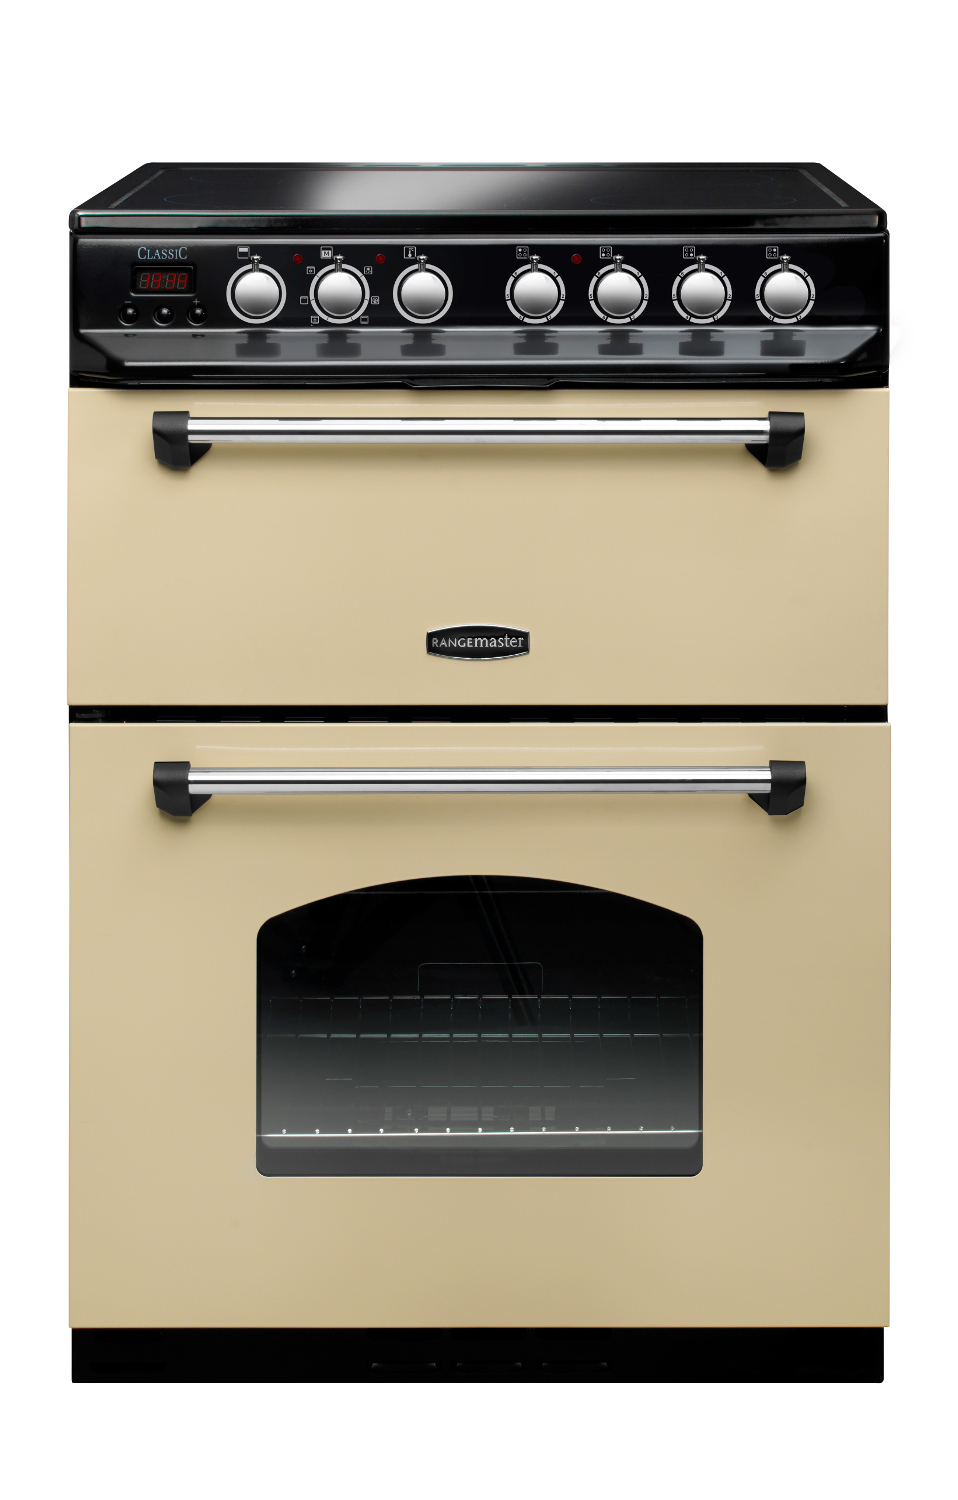 Rangemaster CLAS60ECCR/C Classic 60 Cream with Chrome Trim Ceramic Electric Cooker with Double Oven